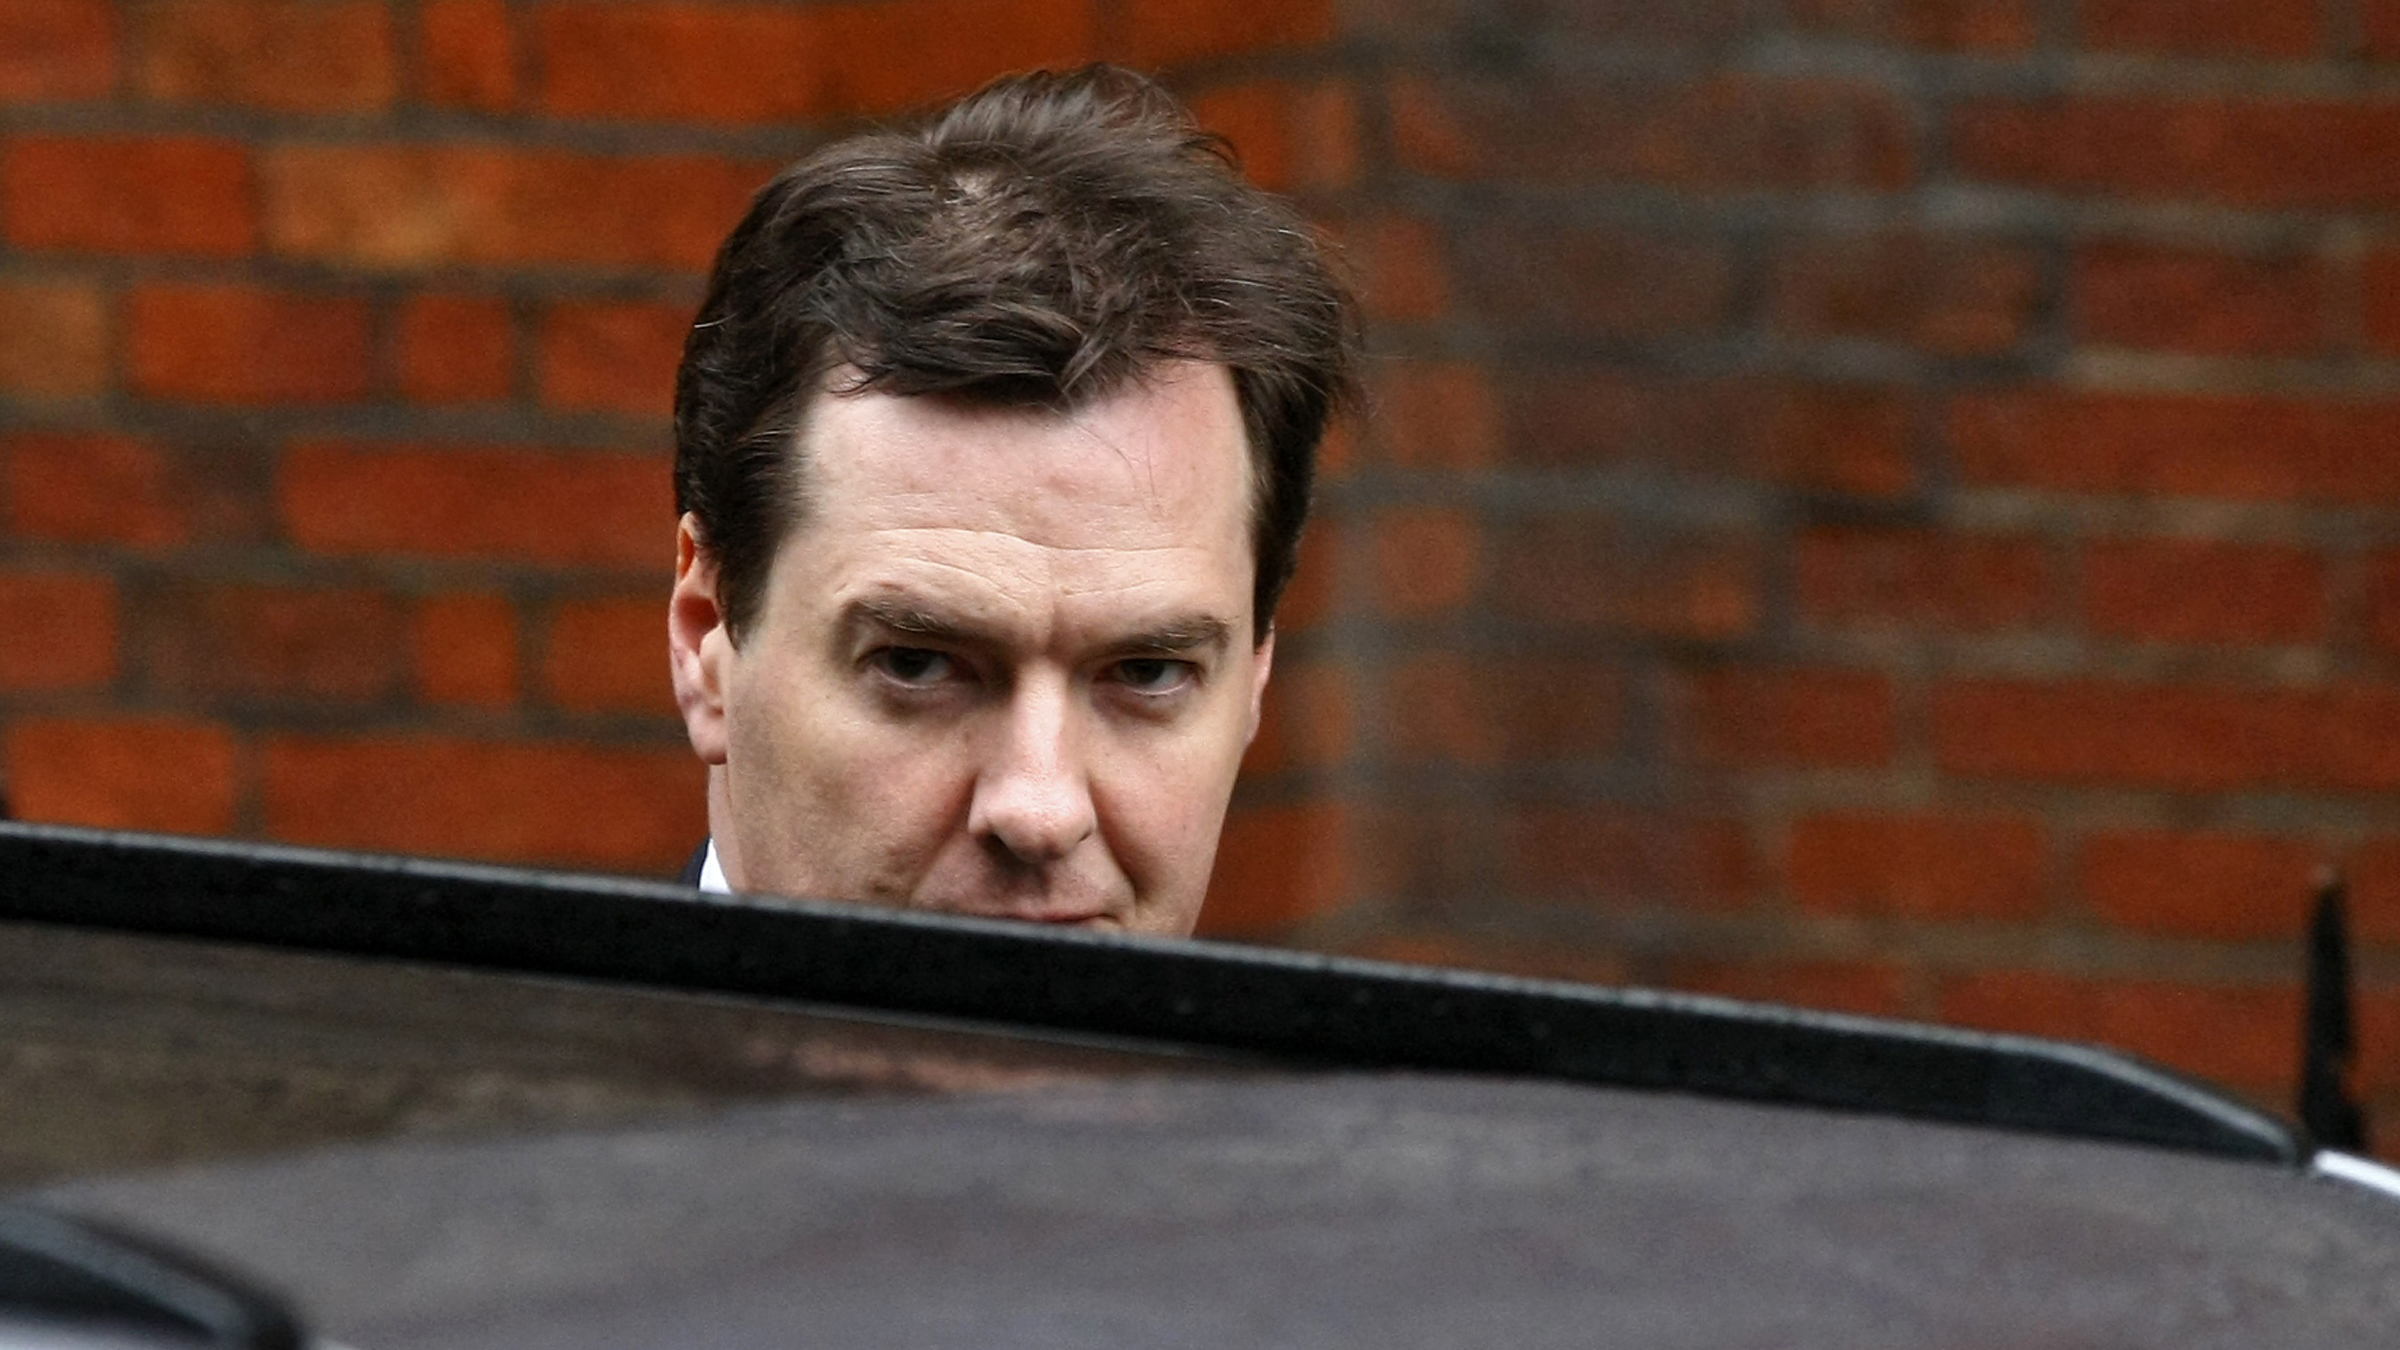 Britain's Chancellor of the Exchequer George Osborne arrives at the High Court to give evidence at the Leveson Inquiry, London, Monday, June 11, 2012. Former British Prime Minister Gordon Brown was the first in a string of current and former political leaders to appear this week at the inquiry, set up amid a tabloid phone hacking scandal to examine malpractice in the media and ties between politicians, police and the press. (AP Photo/Tim Hales